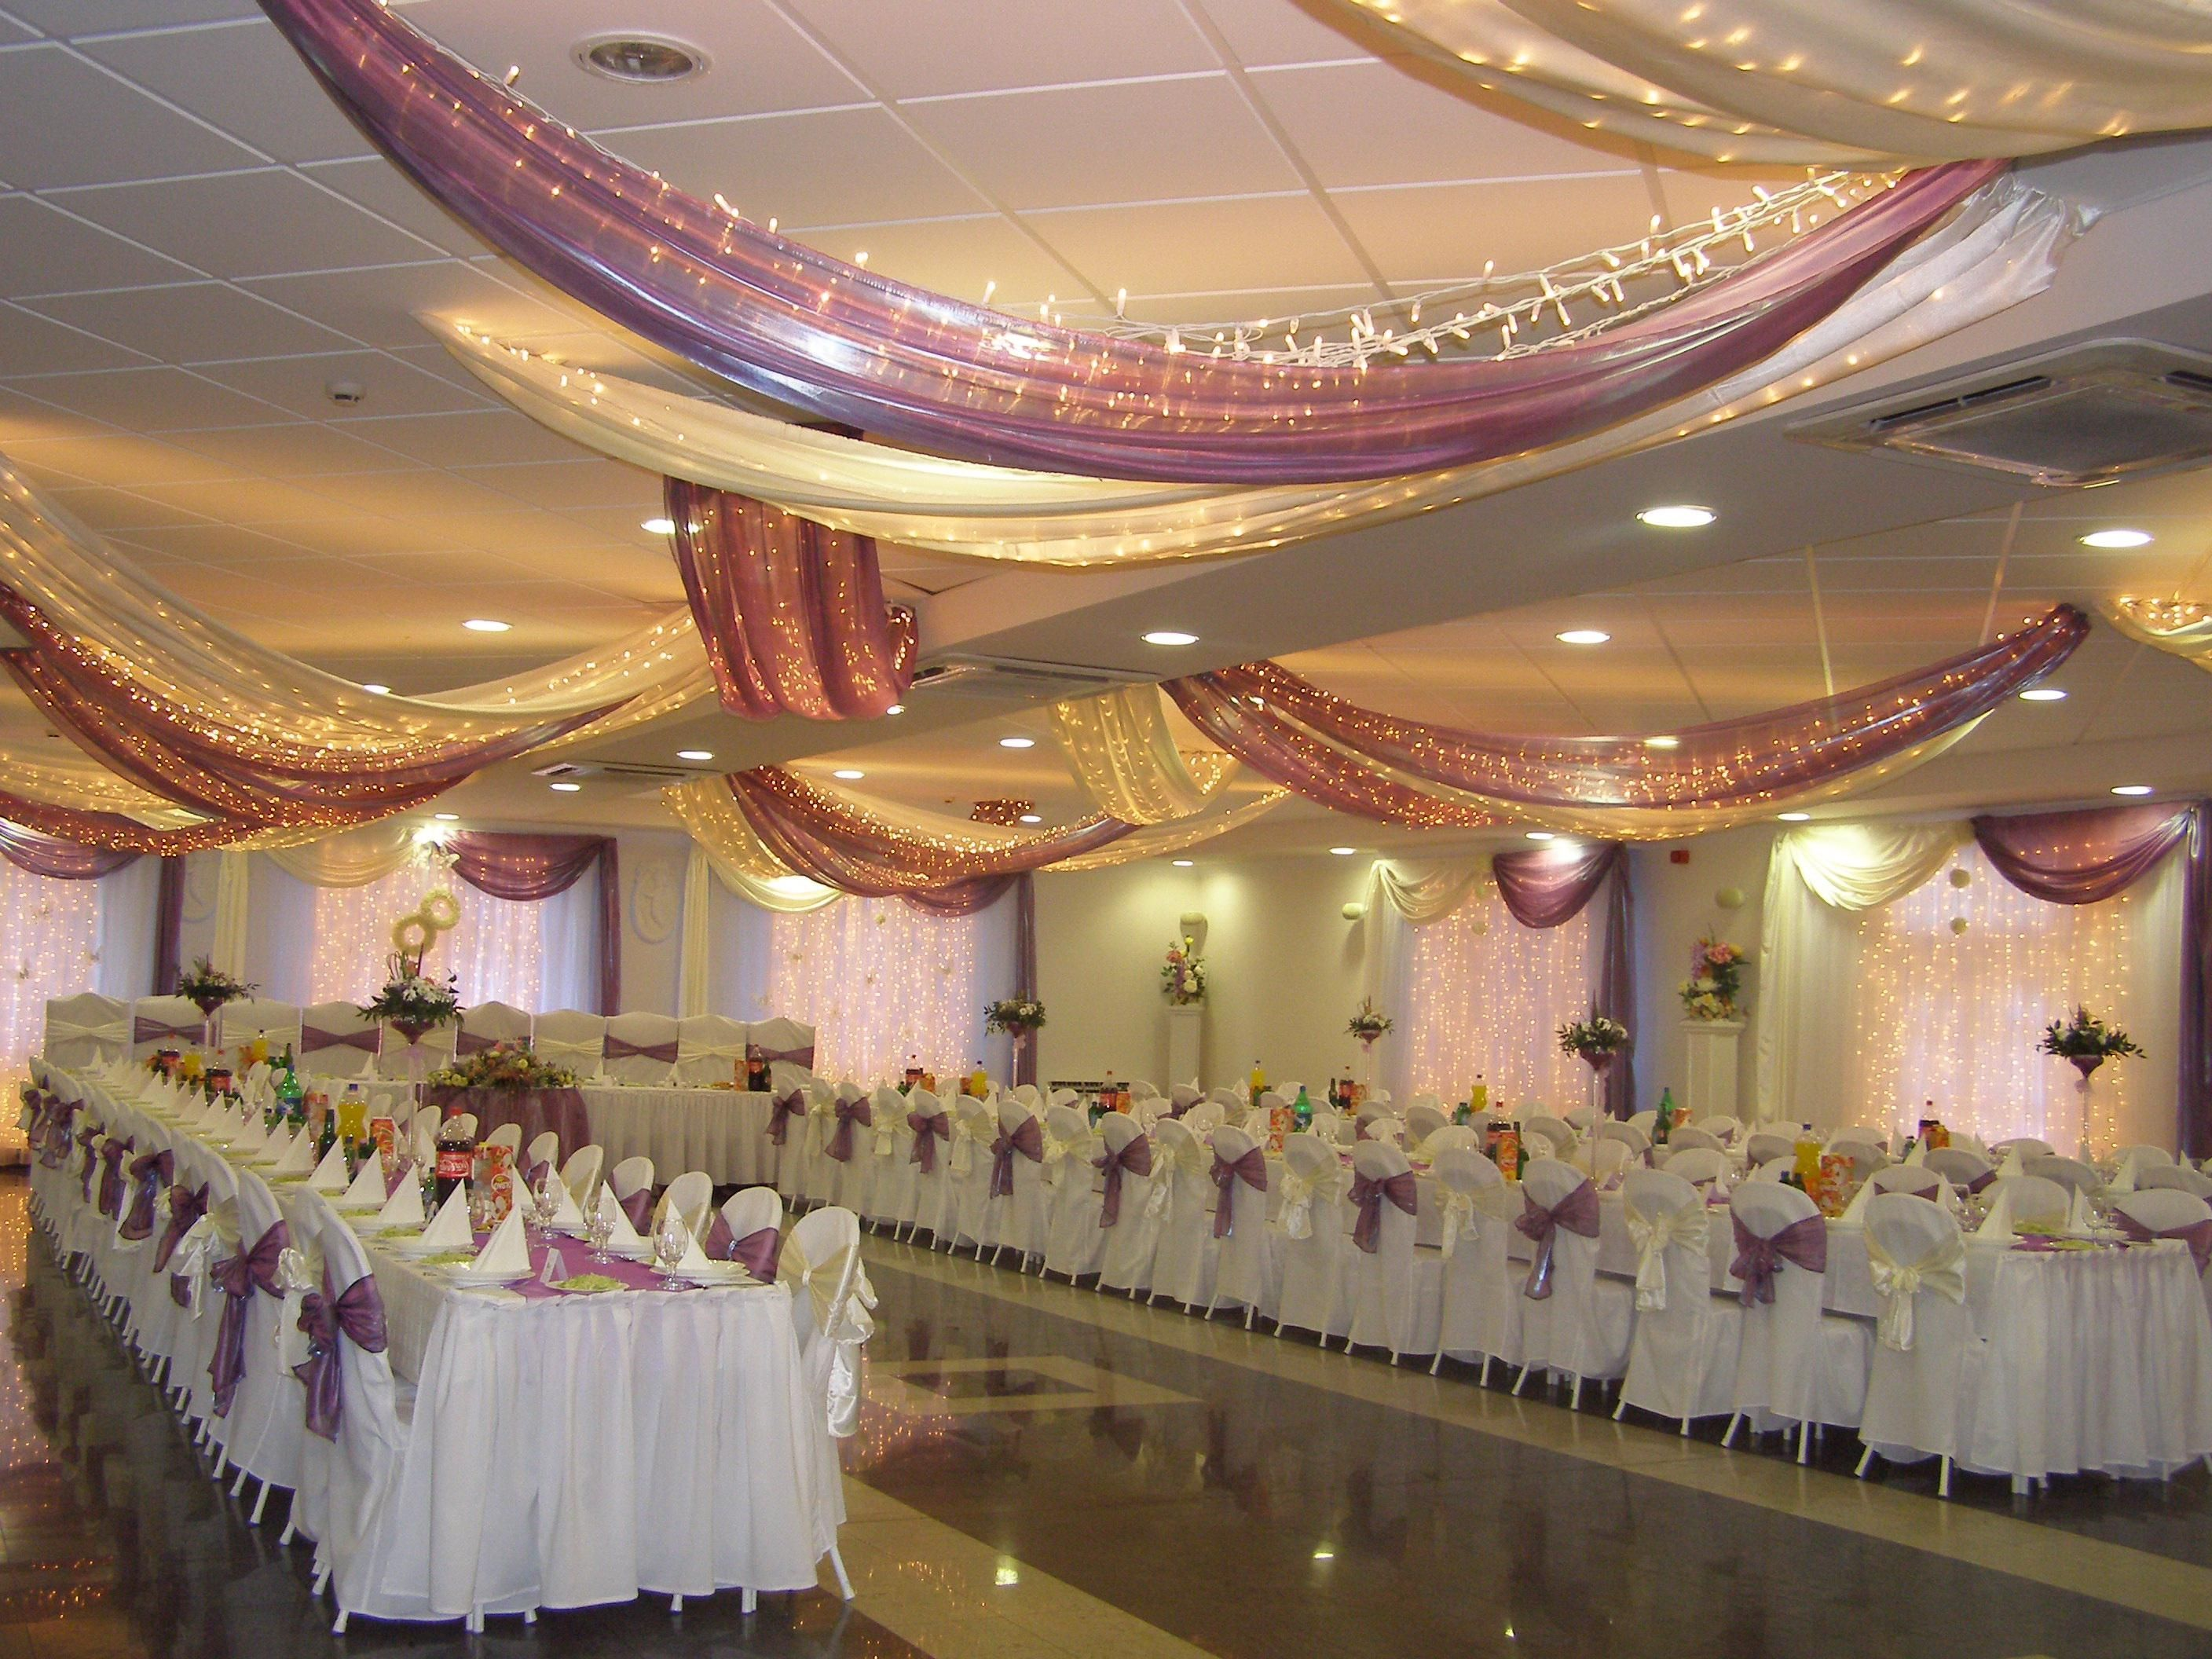 Wedding Hall Decorations With Drapes